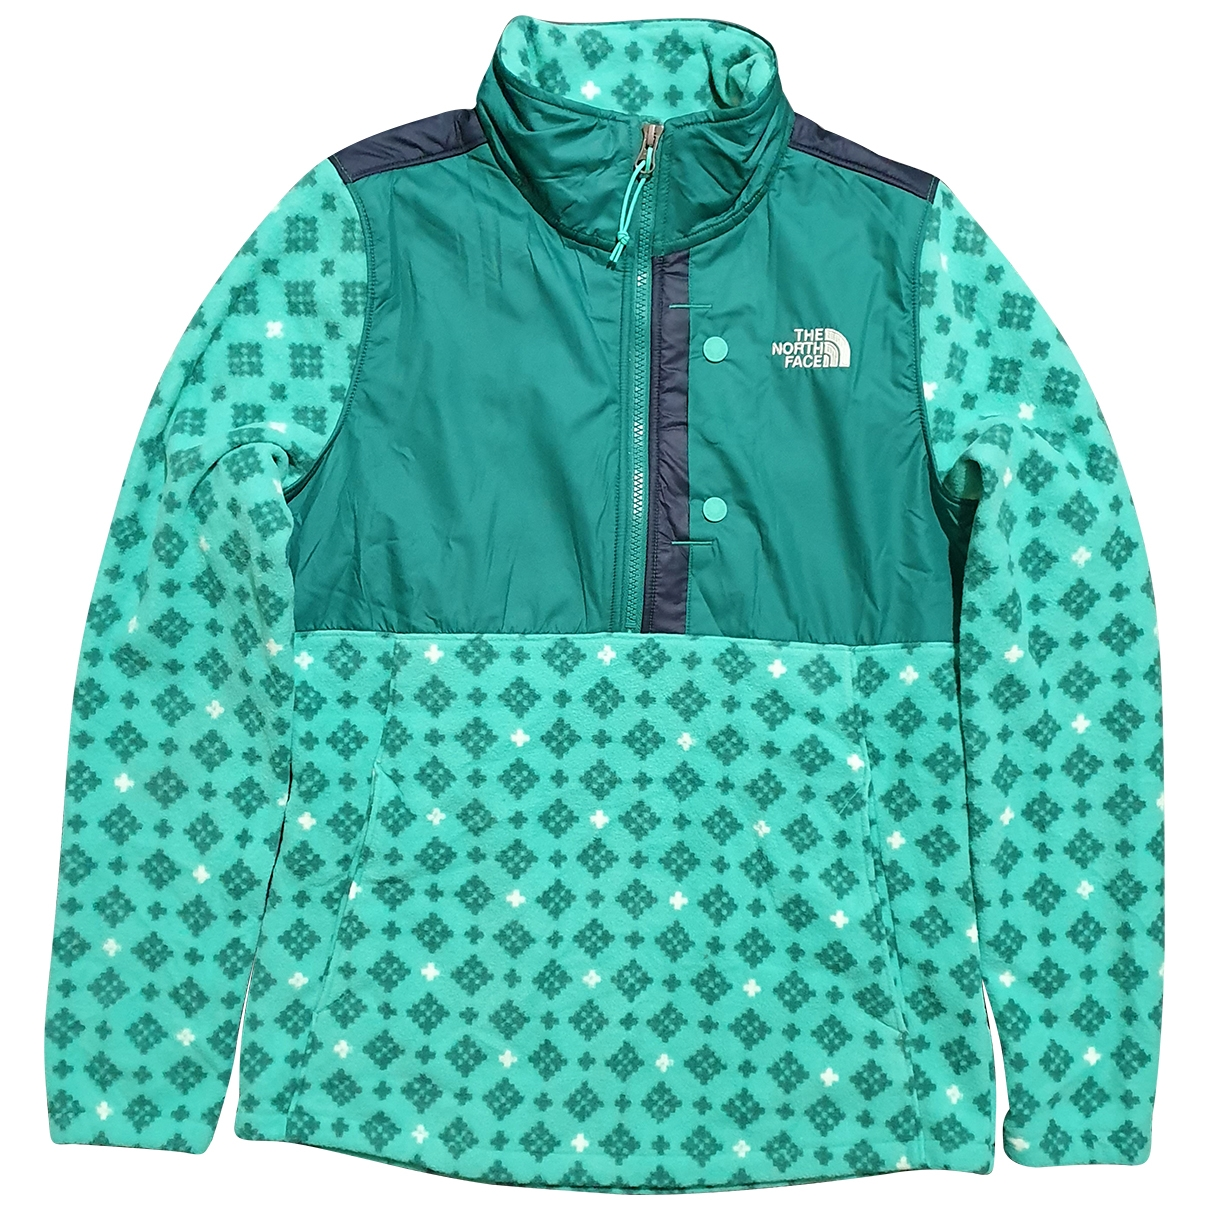 The North Face \N Green Knitwear for Women S International